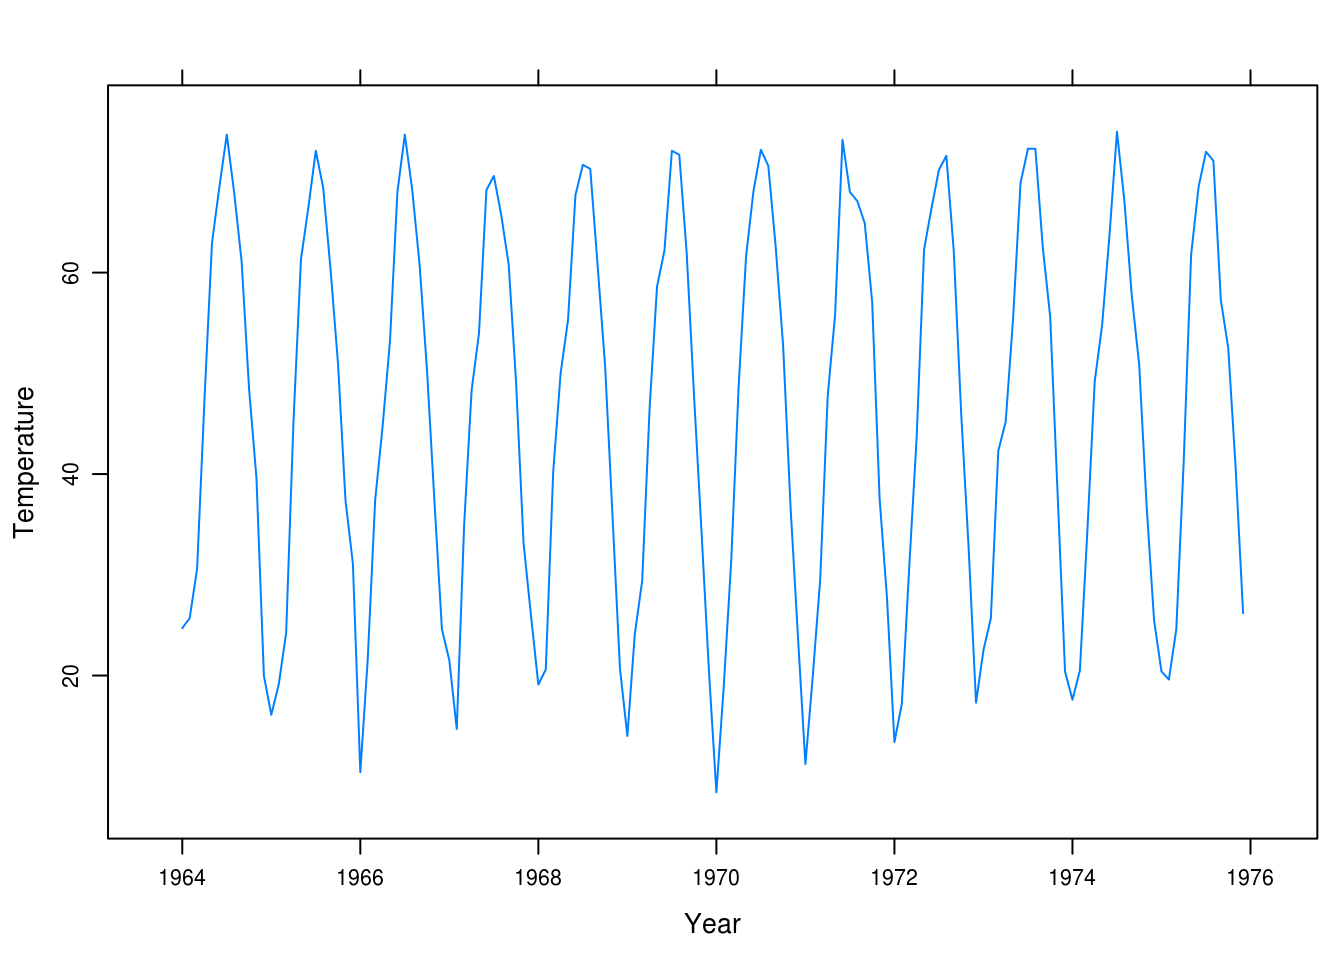 most unusual application of time series analysis